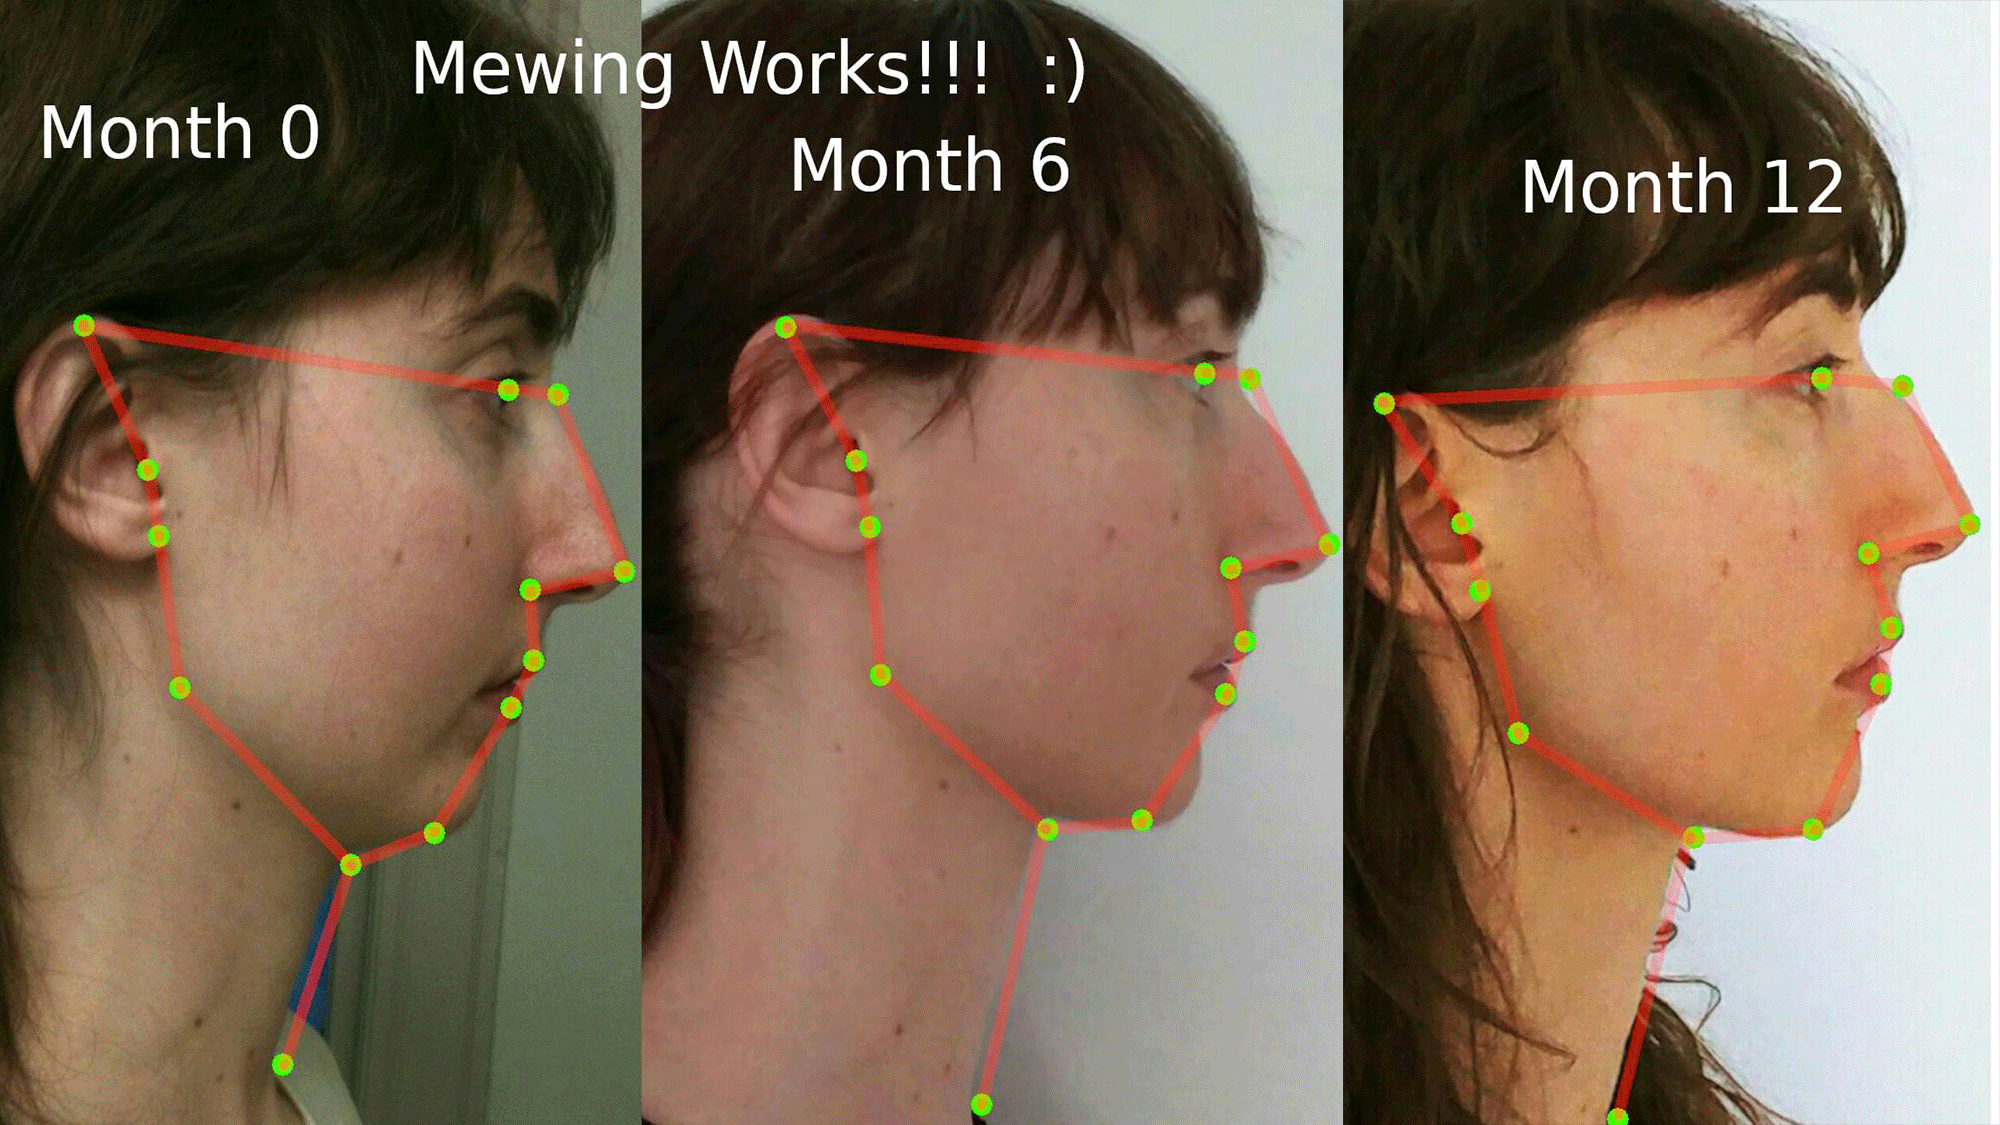 mewing-works